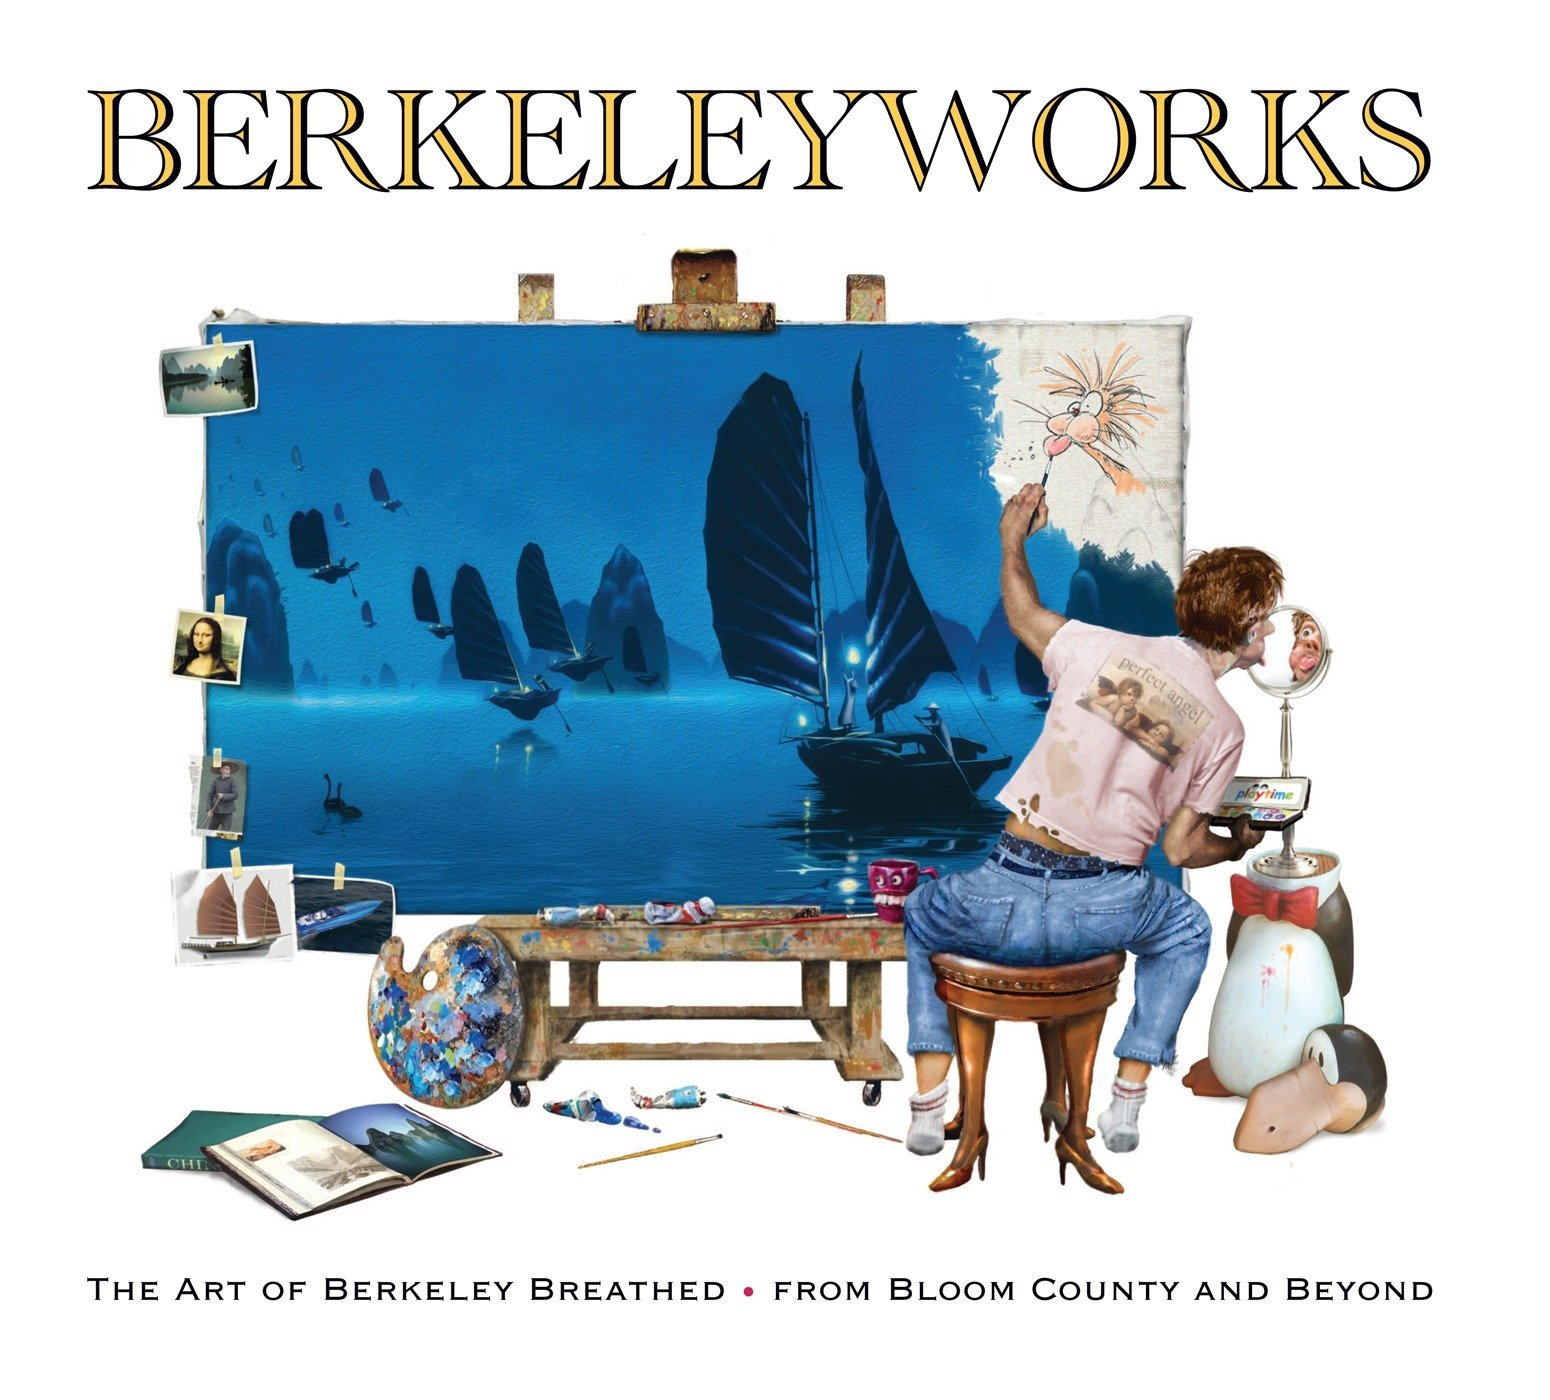 Berkeleyworks: The Art of Berkeley Breathed: From Bloom County and Beyond by IDW Publishing